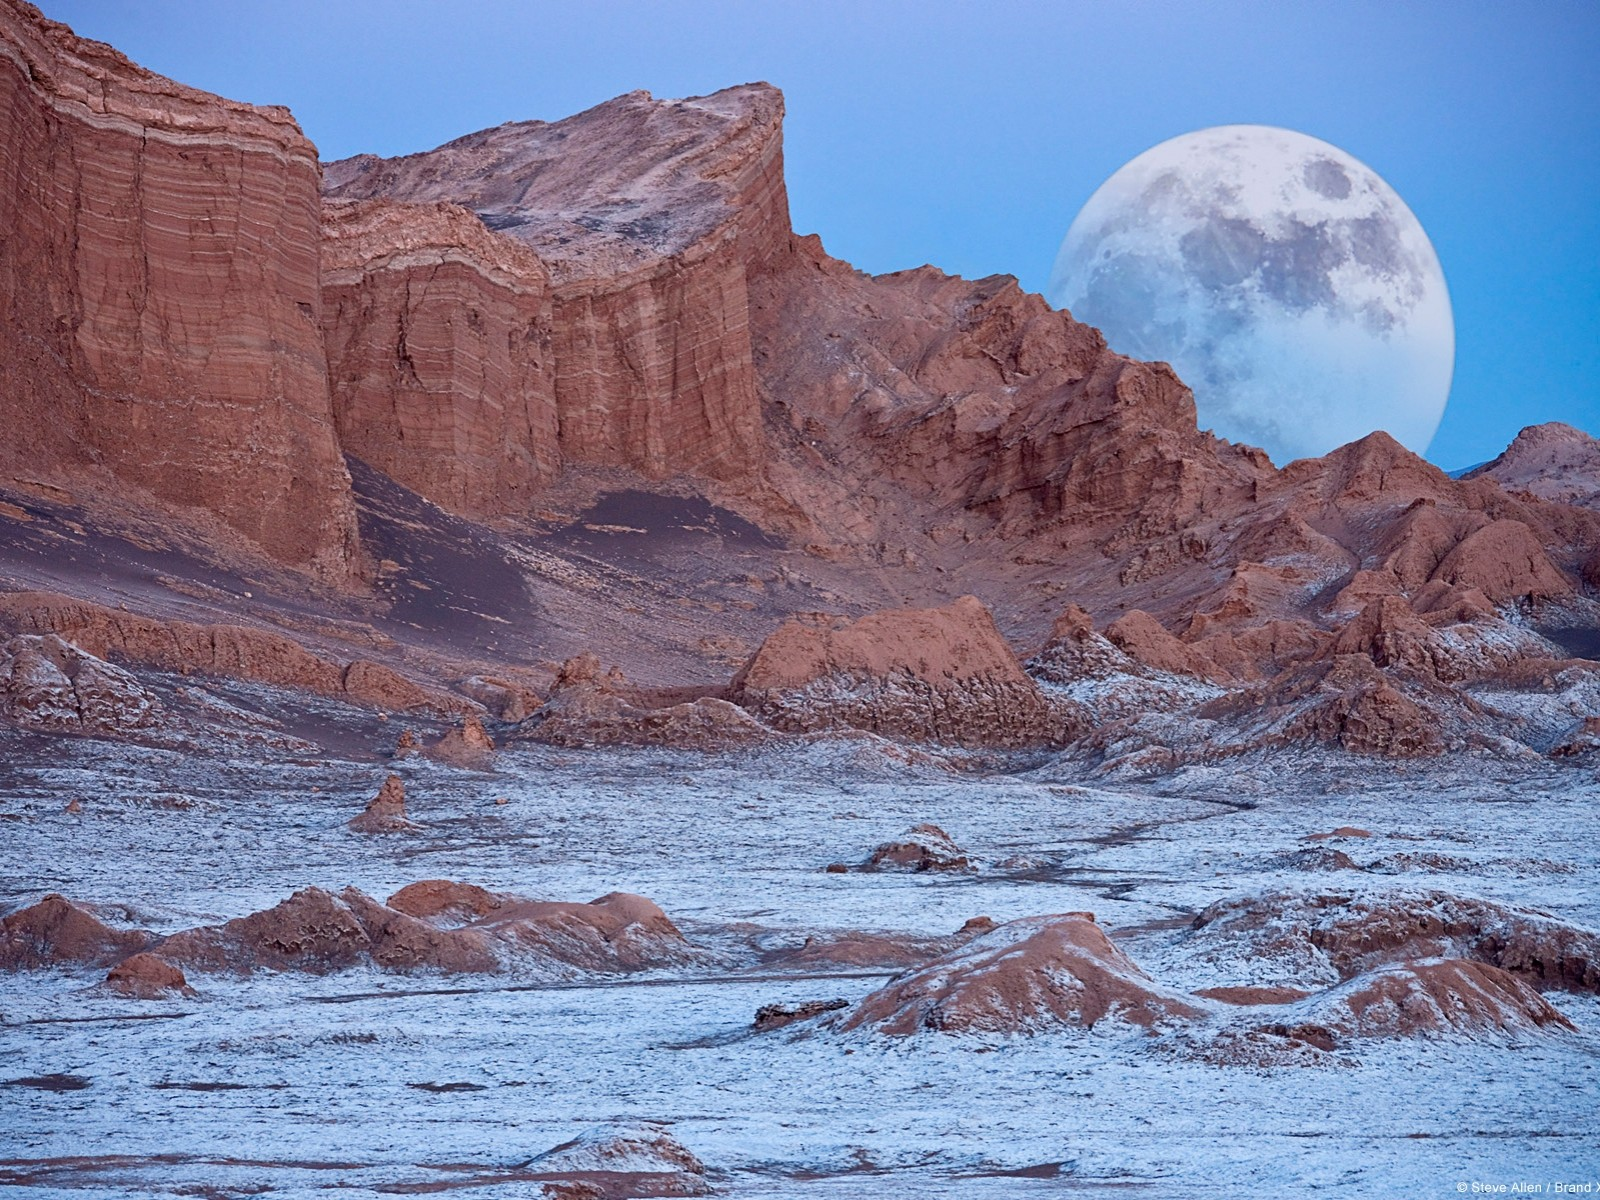 Wind and water have eroded the sedimentary rocks in the Valley of the Moon.